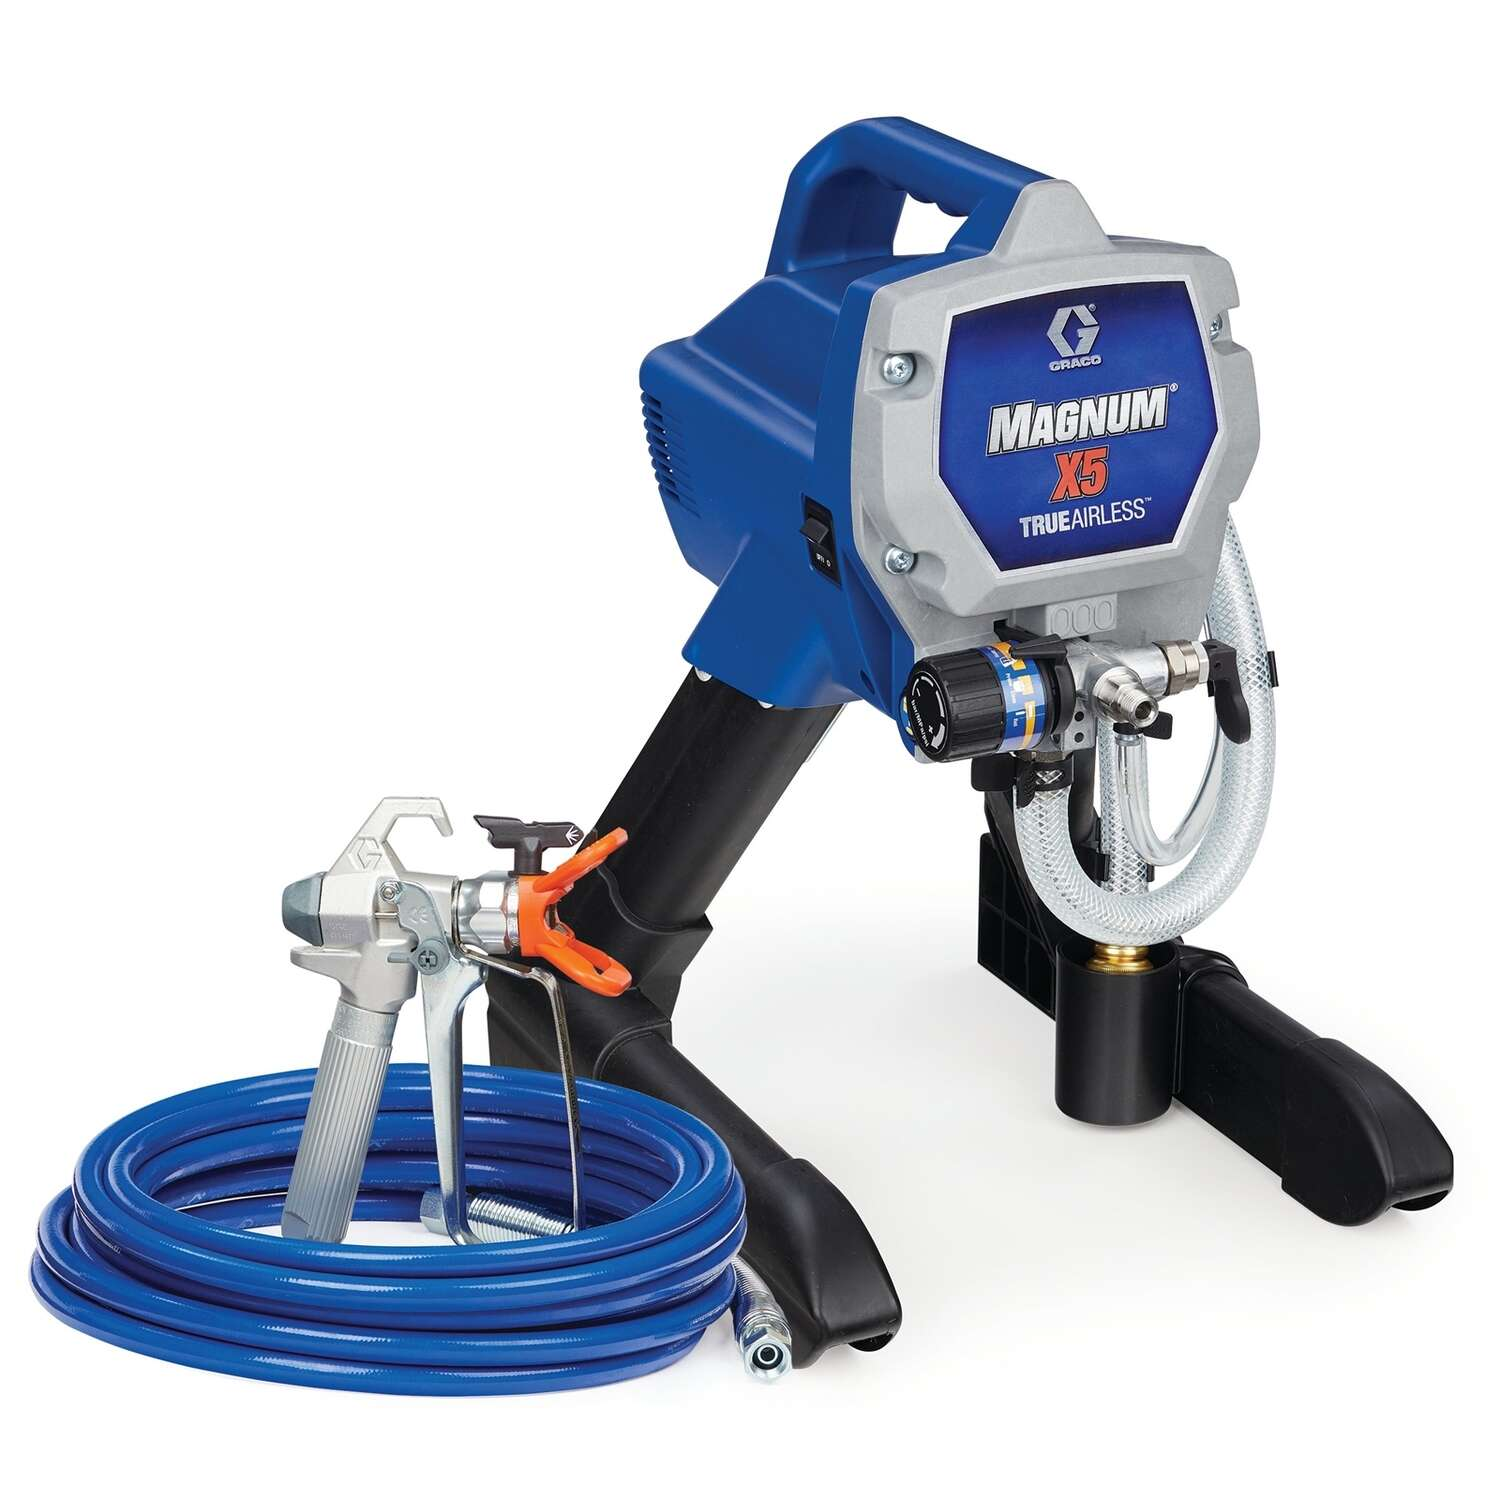 Graco Magnum X5 3000 psi Steel Airless Sprayer